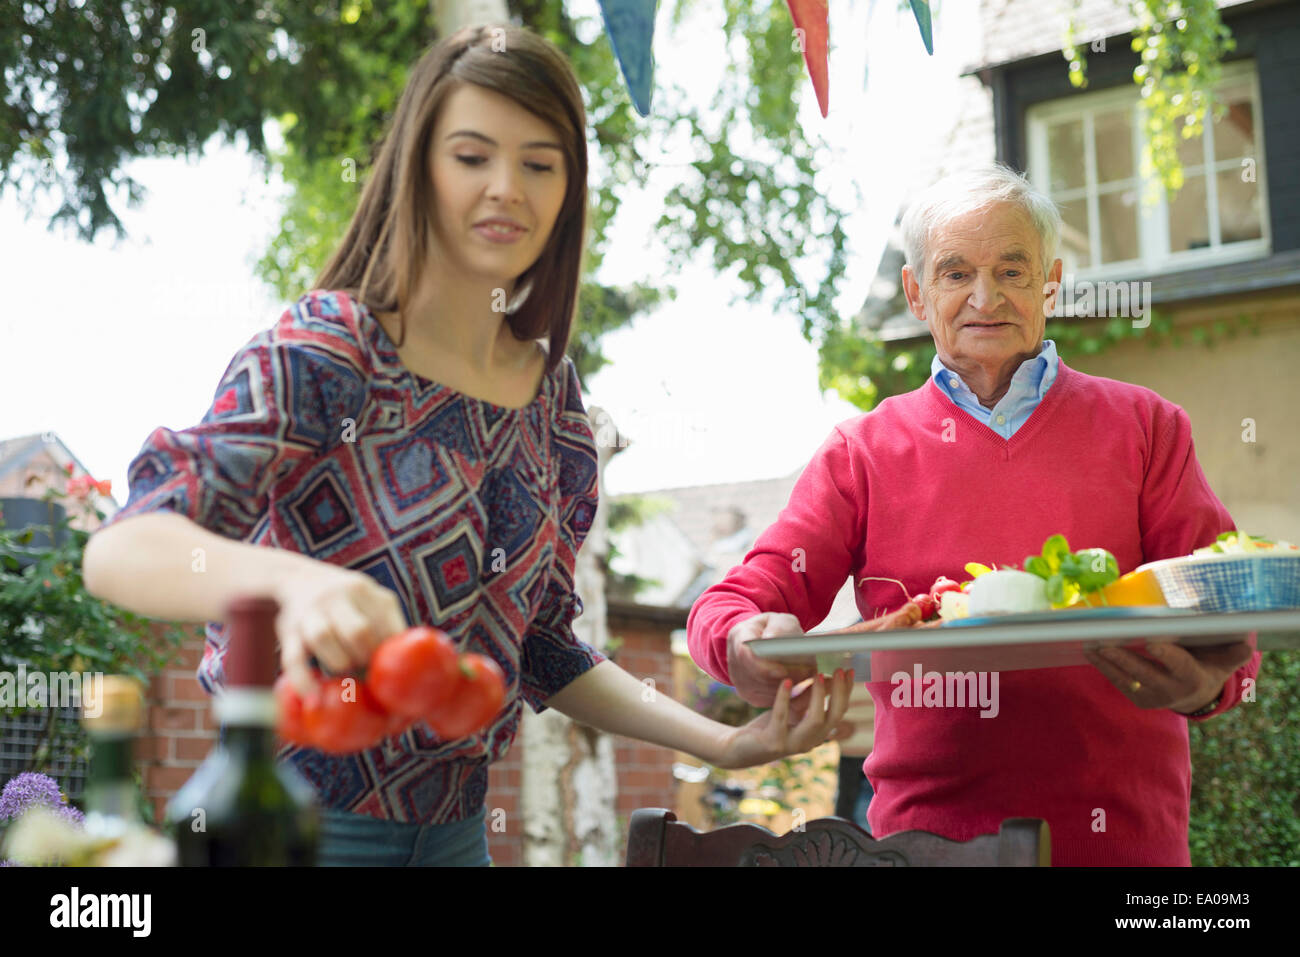 Grandfather carrying tray with granddaughter setting table - Stock Image